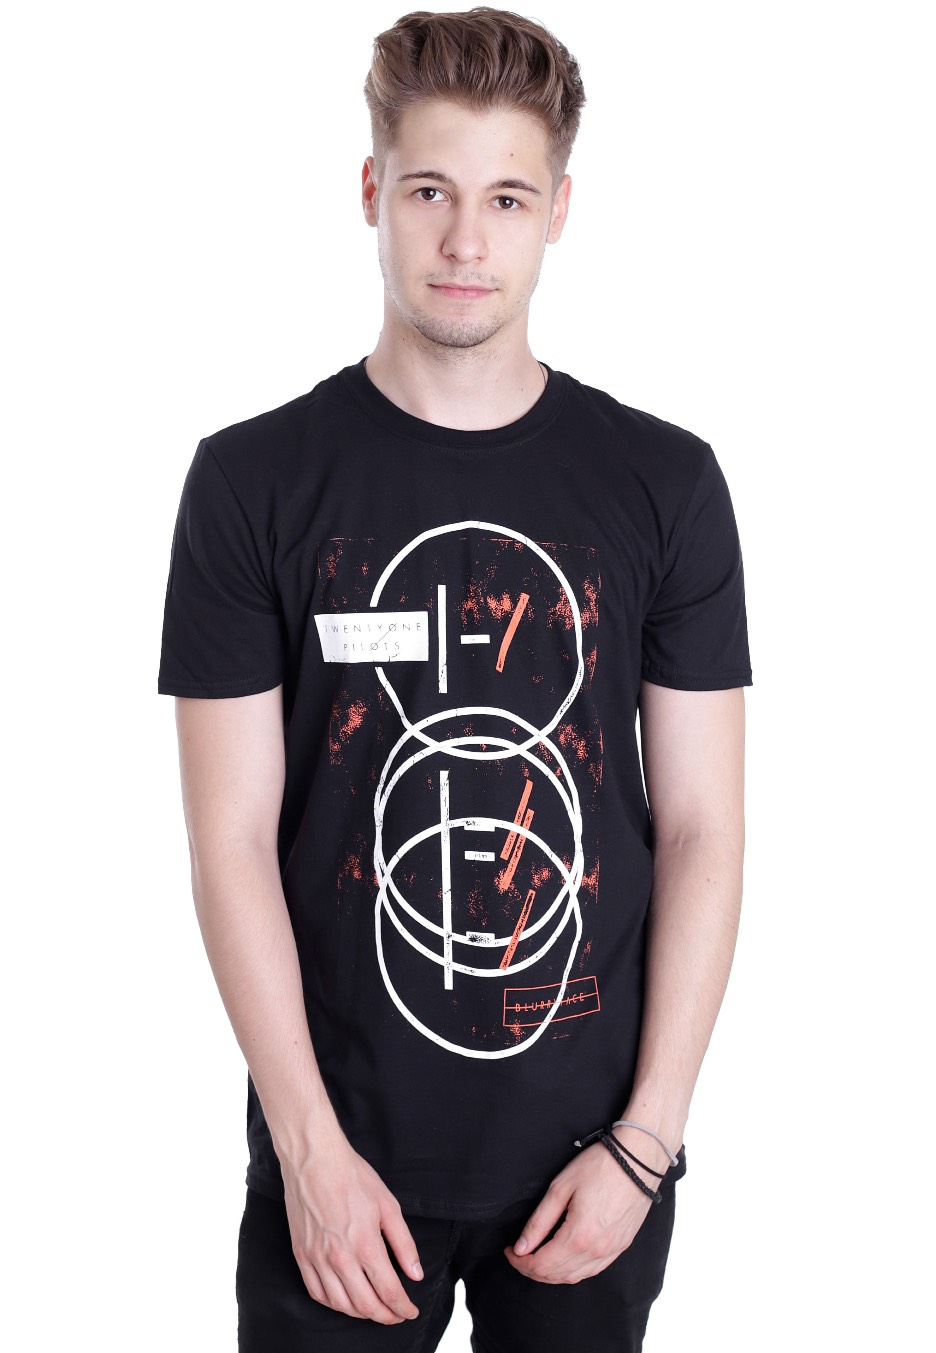 Twenty one pilots overstamp t shirt official for Twenty one pilots